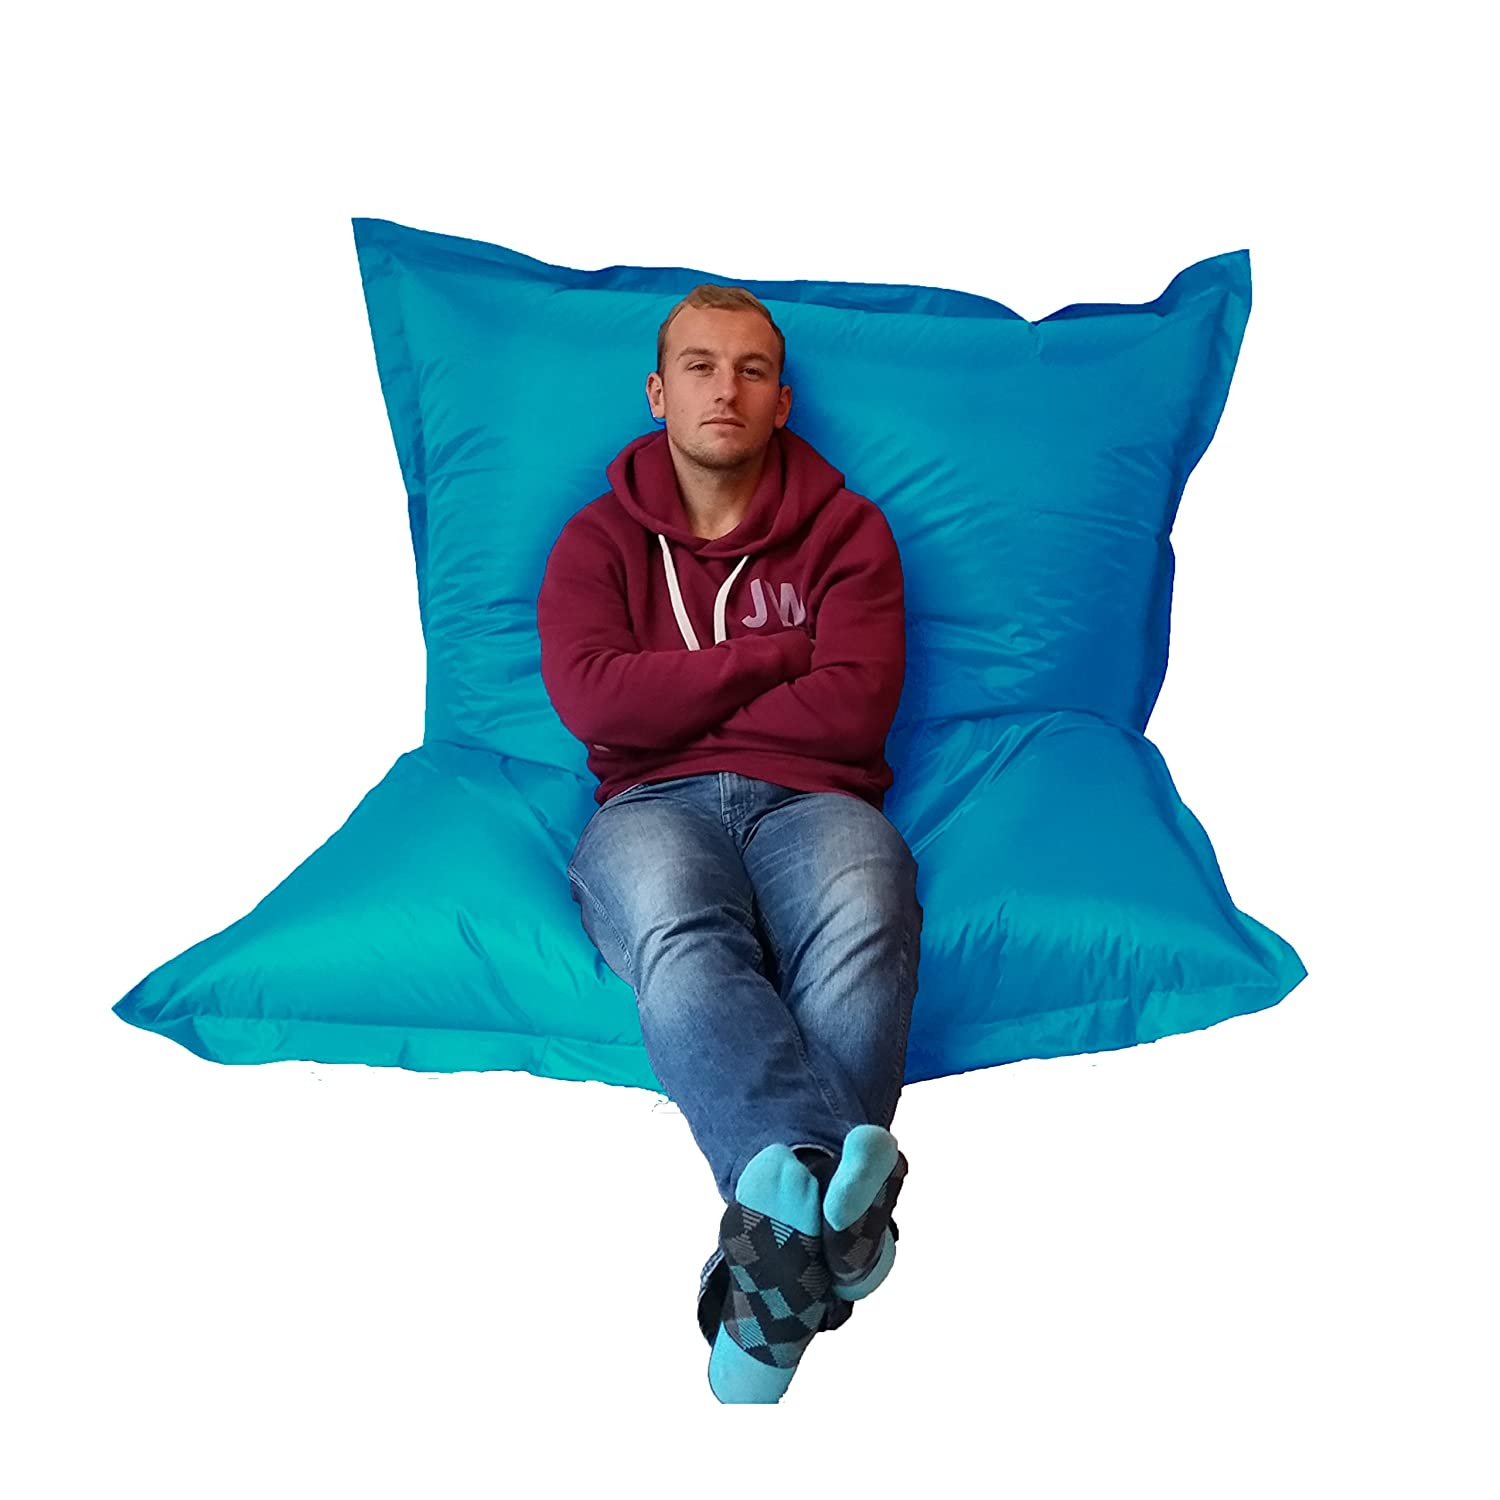 Amazon.com: Extra Large Giant Beanbag Teal Blue - Indoor ...